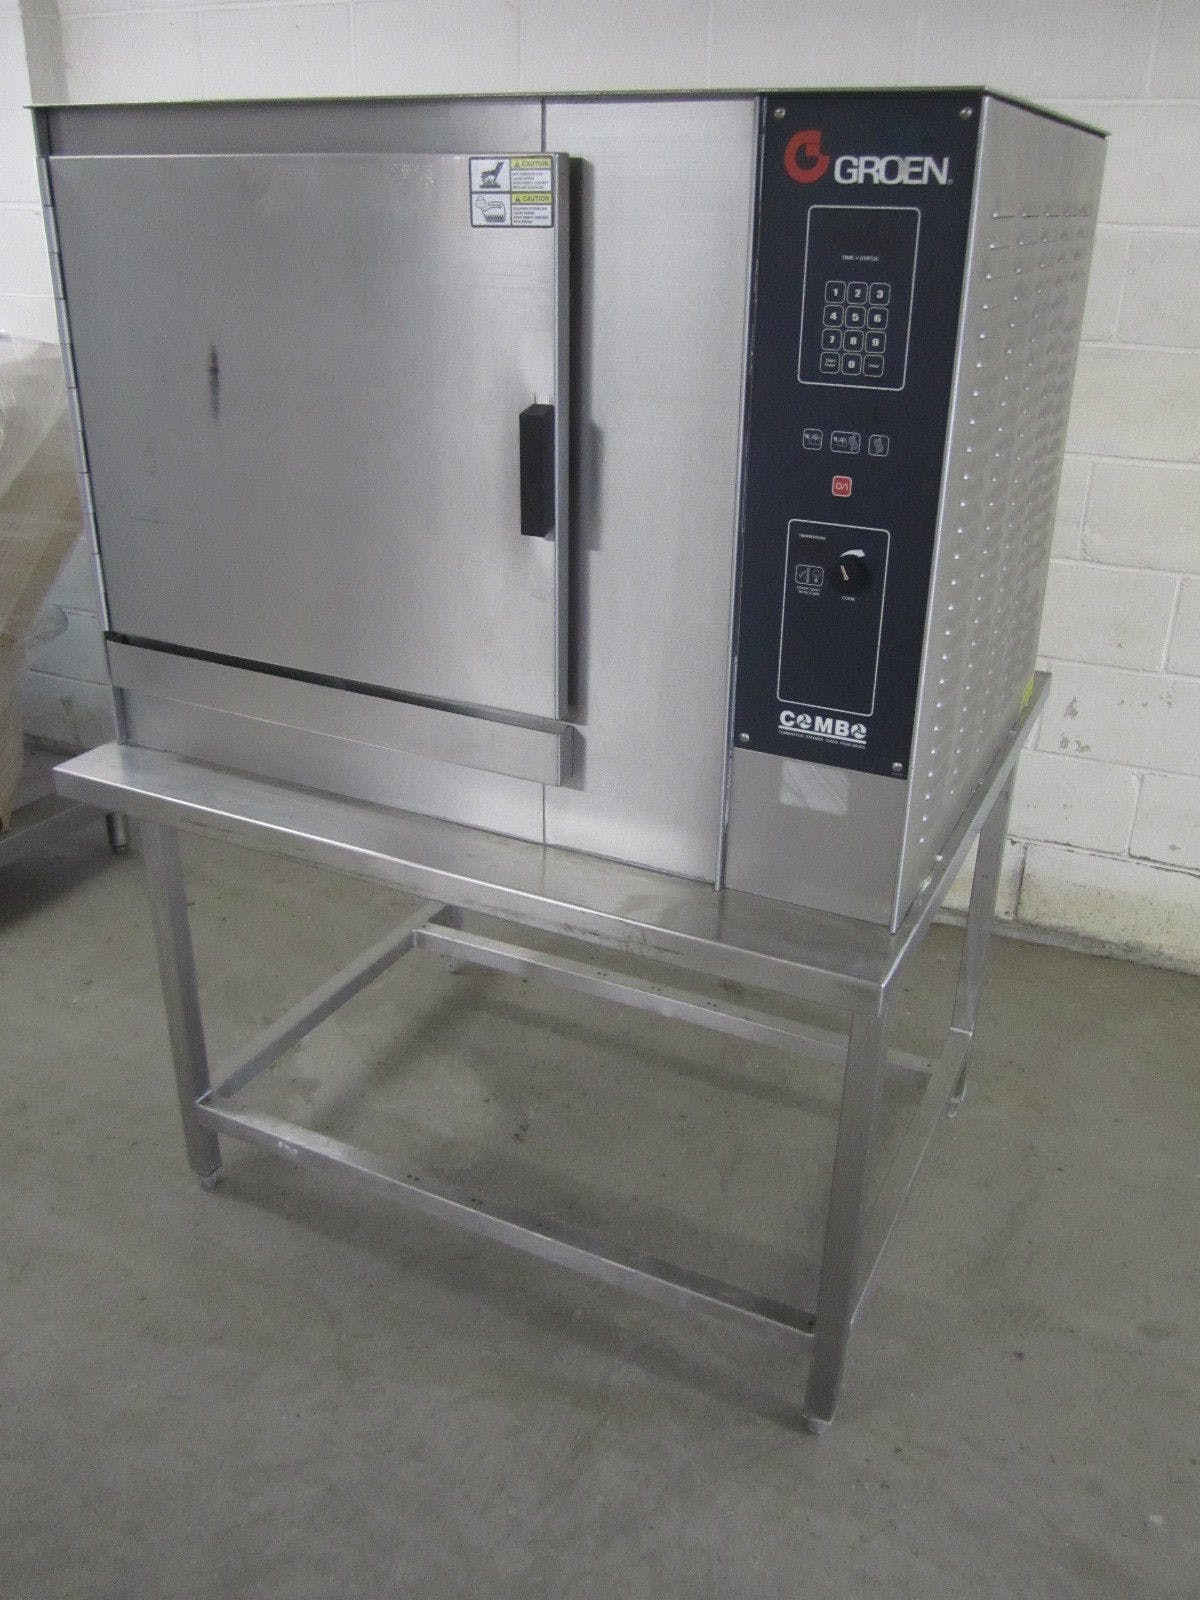 Groen Combo Combination Steam & Convection Oven Model CC20-E TESTED